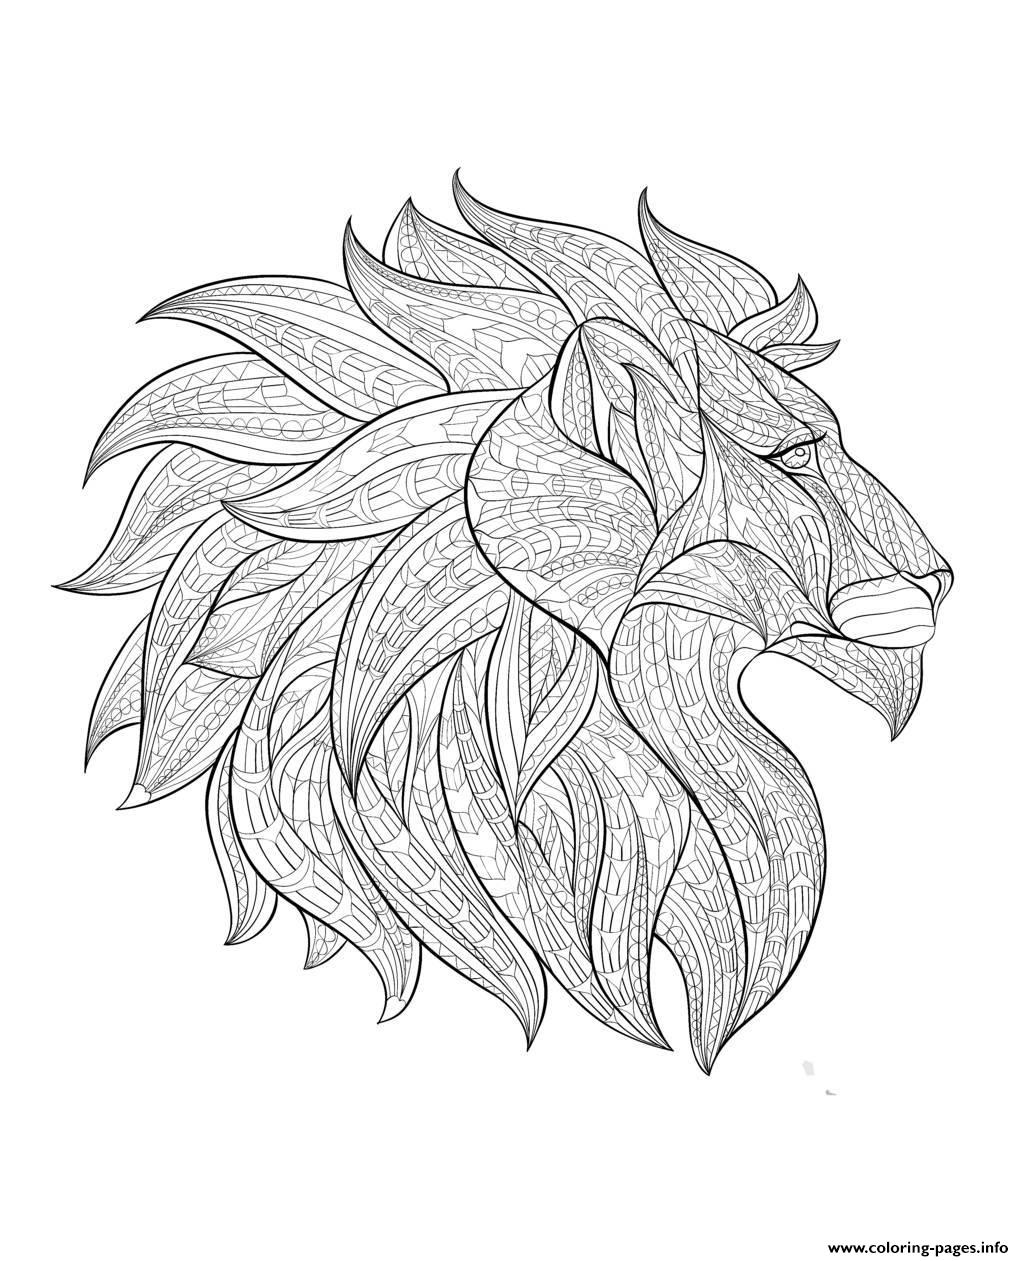 Adult Africa Lion Head Profile Coloring Pages Printable